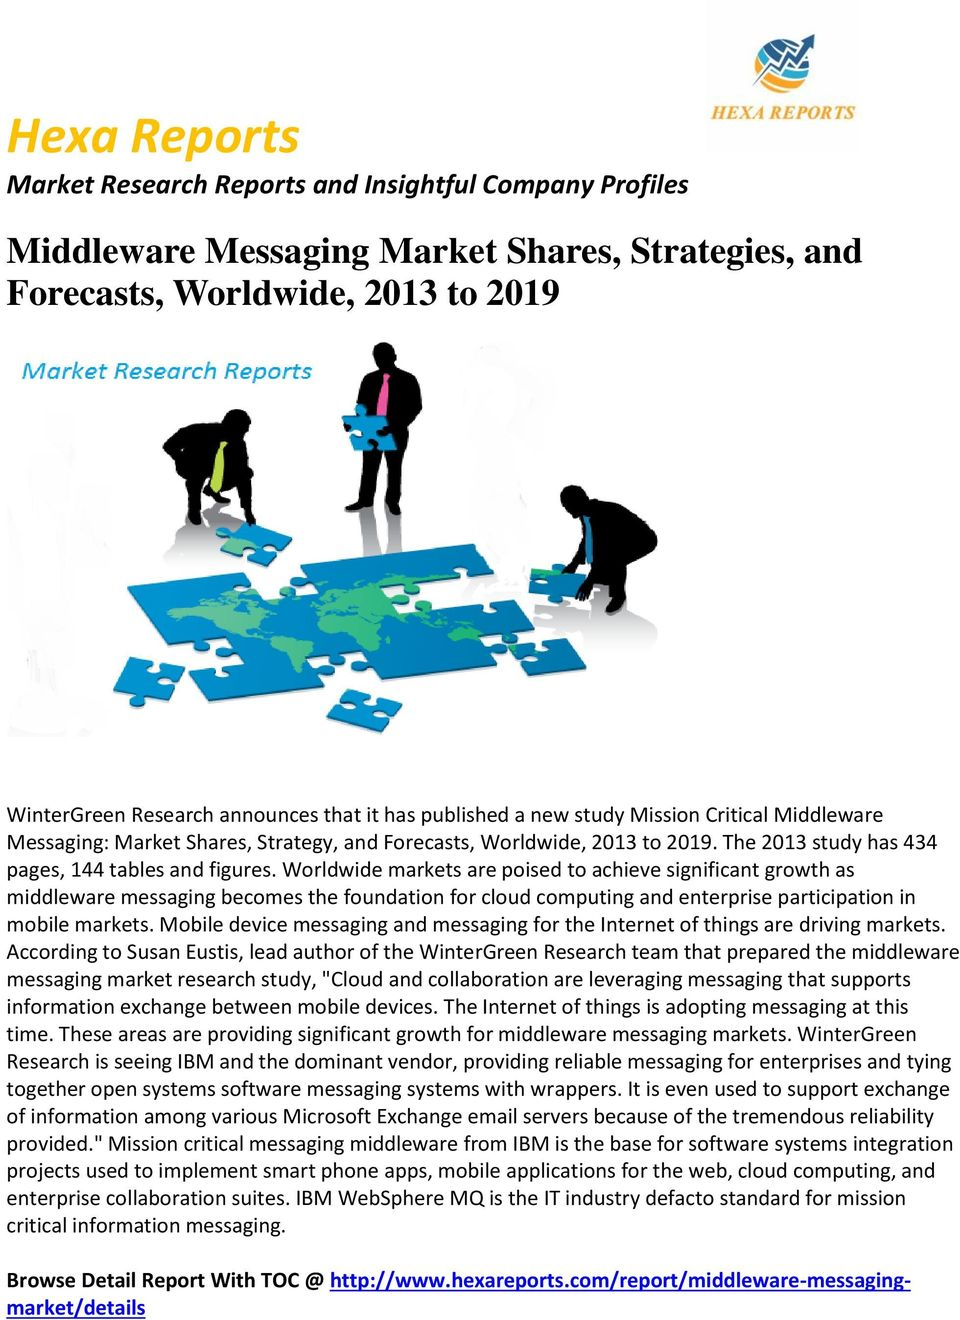 Worldwide markets are poised to achieve significant growth as middleware messaging becomes the foundation for cloud computing and enterprise participation in mobile markets.